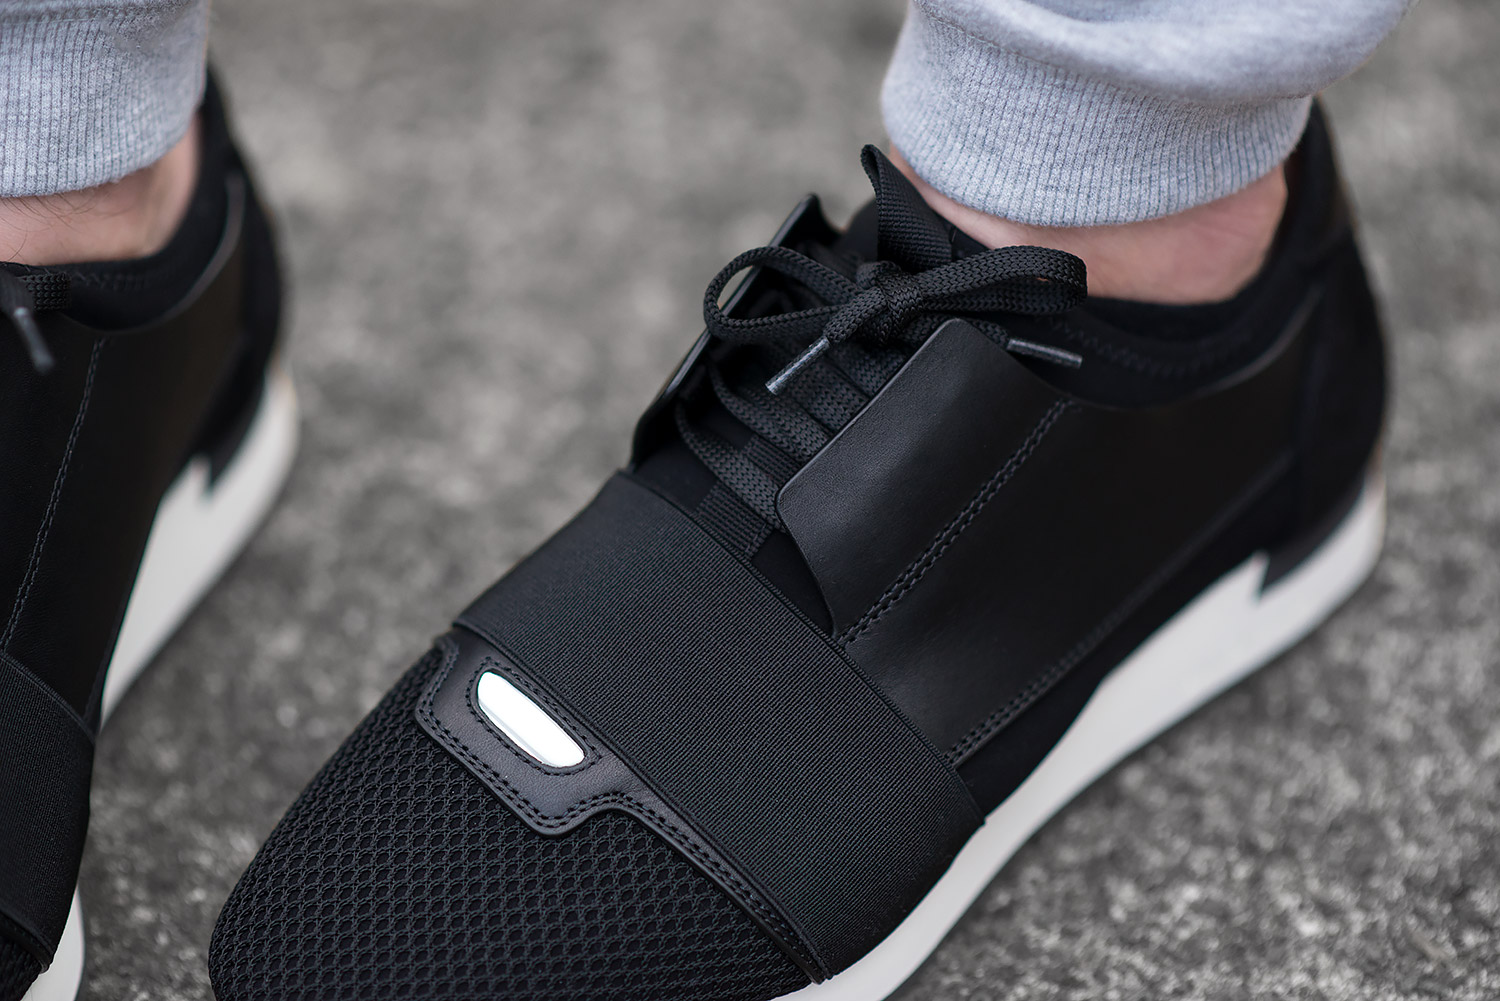 5eb6a8d5af843 P.S. – These shoes are highly faked everywhere so be very careful when you  buy yours online. Only order from the trusted retailers I have linked to  (or ...